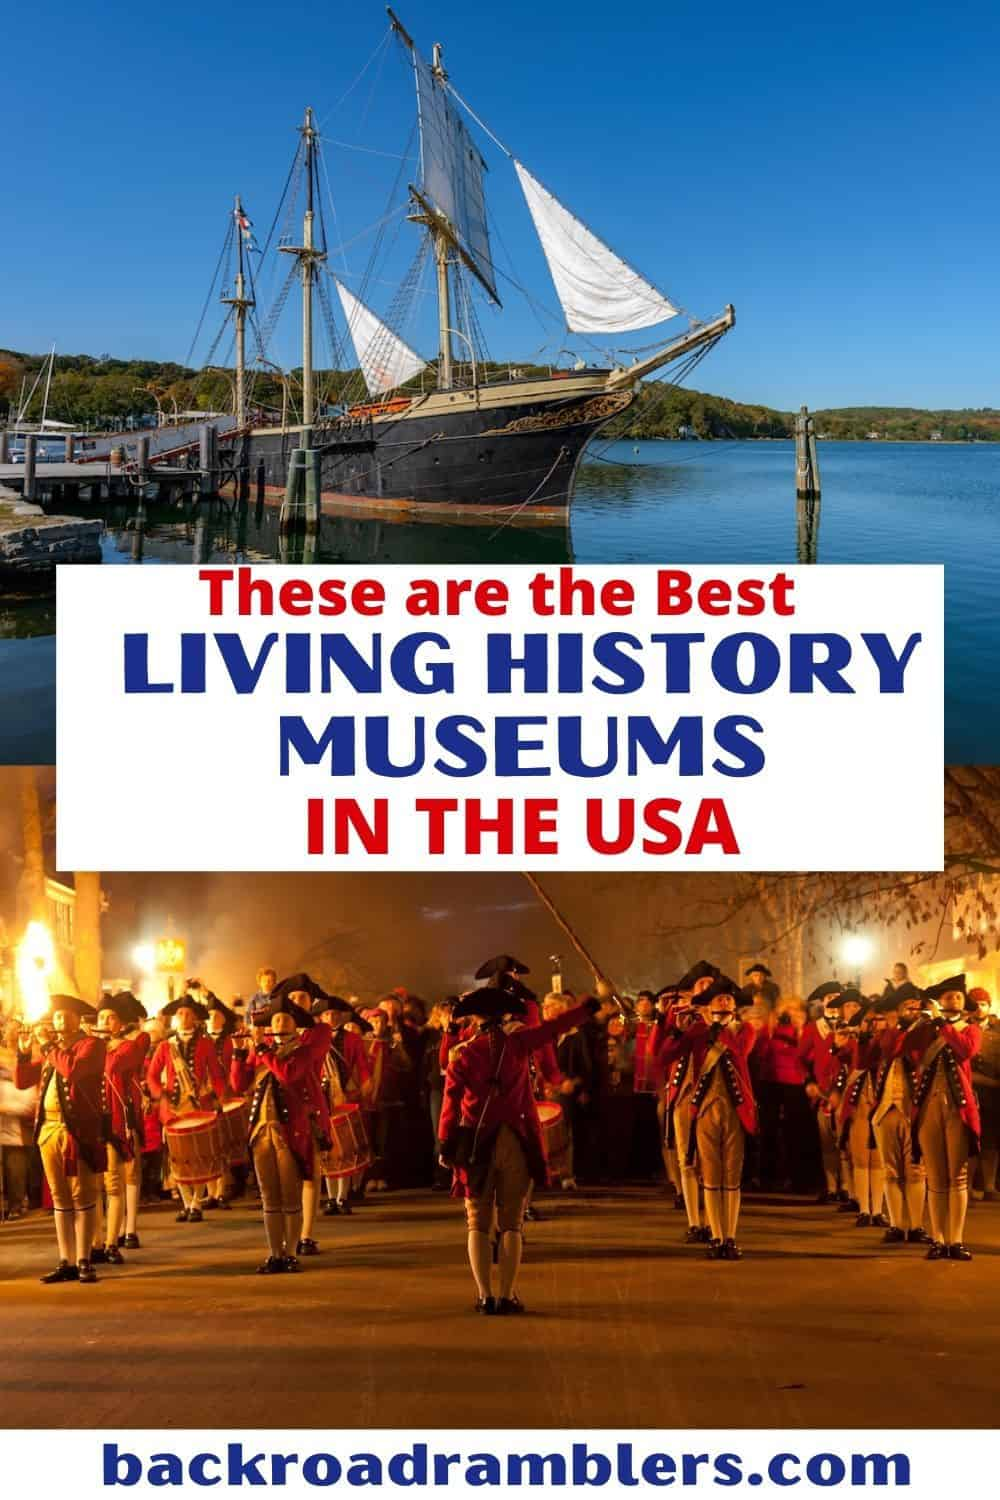 A collage of photos featuring living history museums in the United States